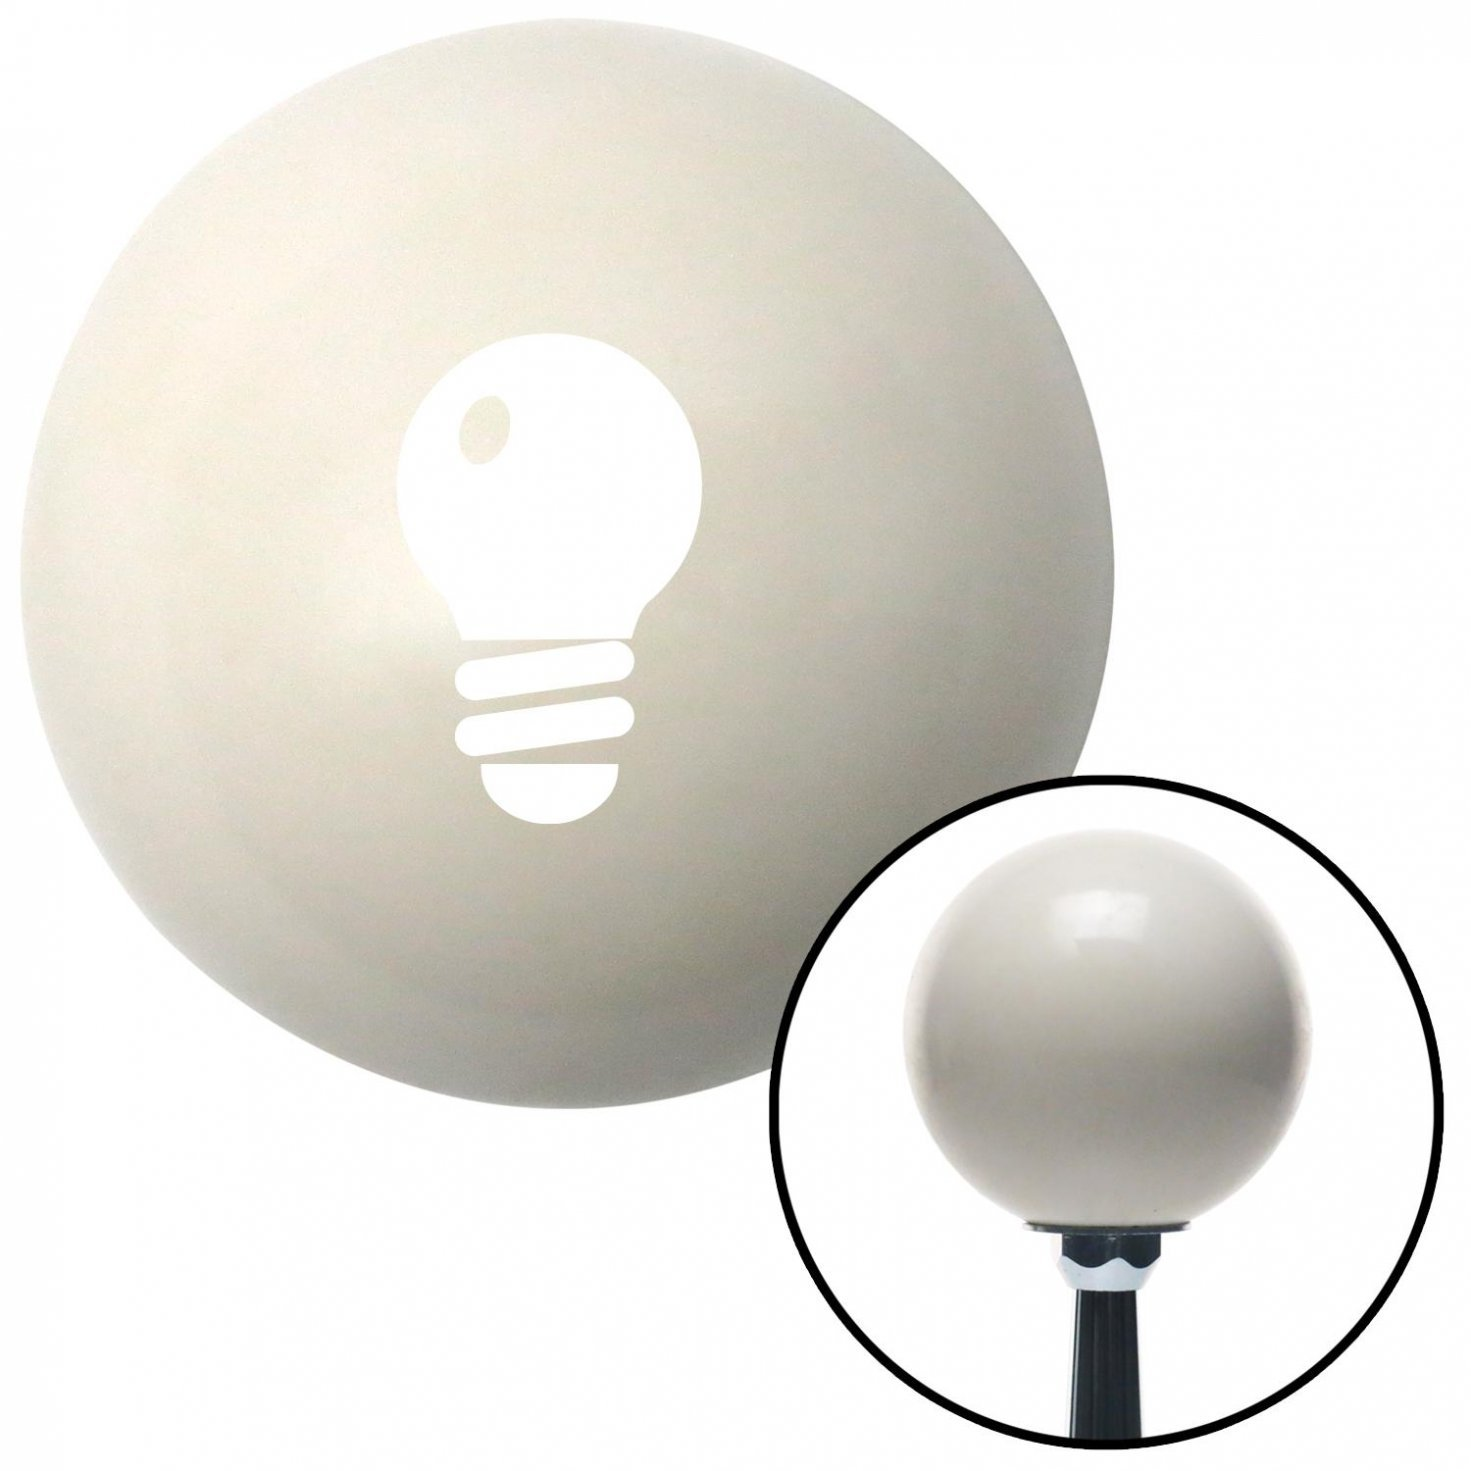 White Light Bulb American Shifter 32784 Ivory Shift Knob with 16mm x 1.5 Insert